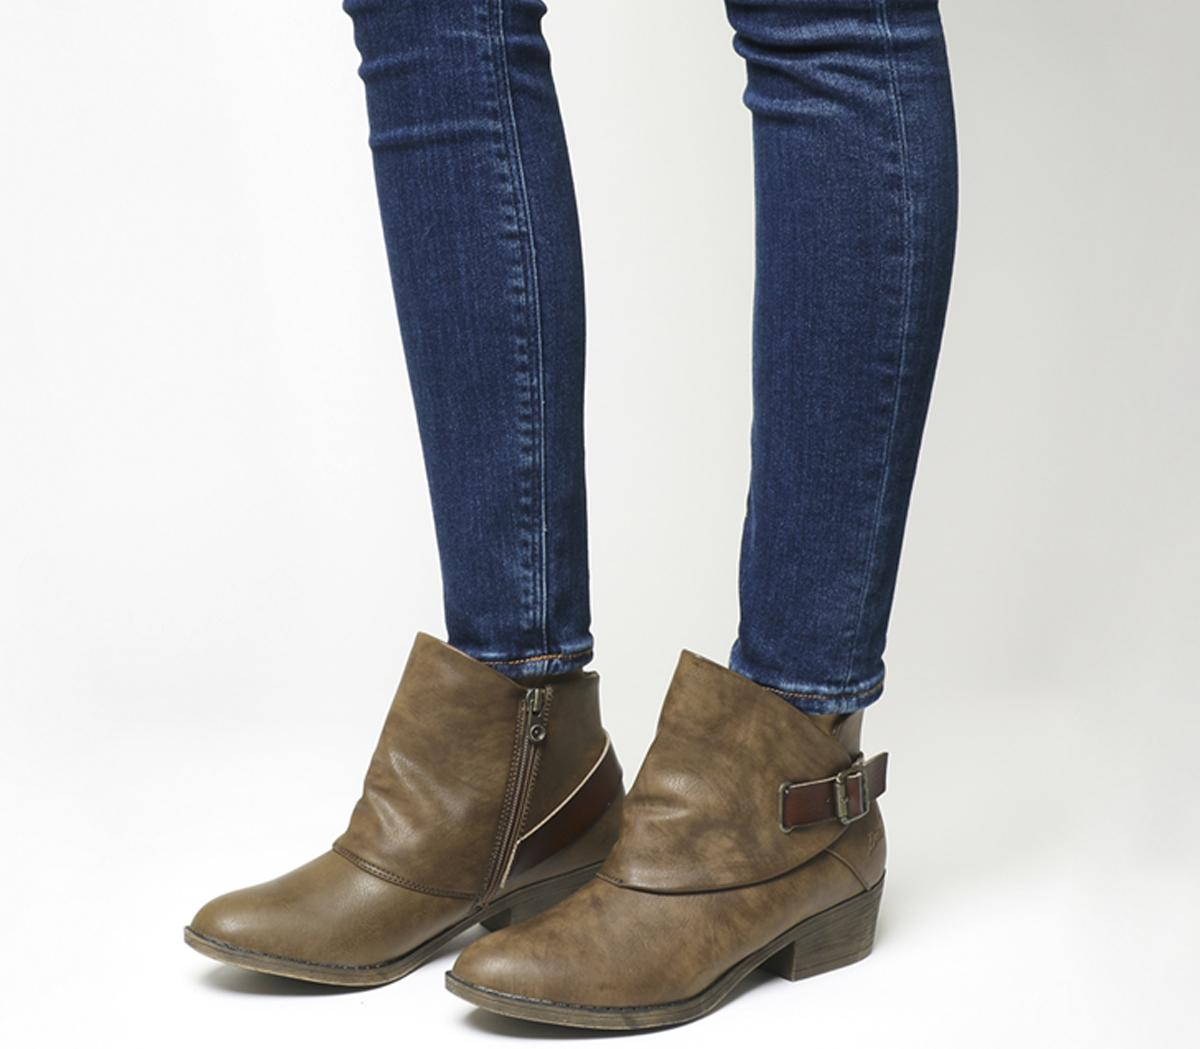 Sill Ankle Boots